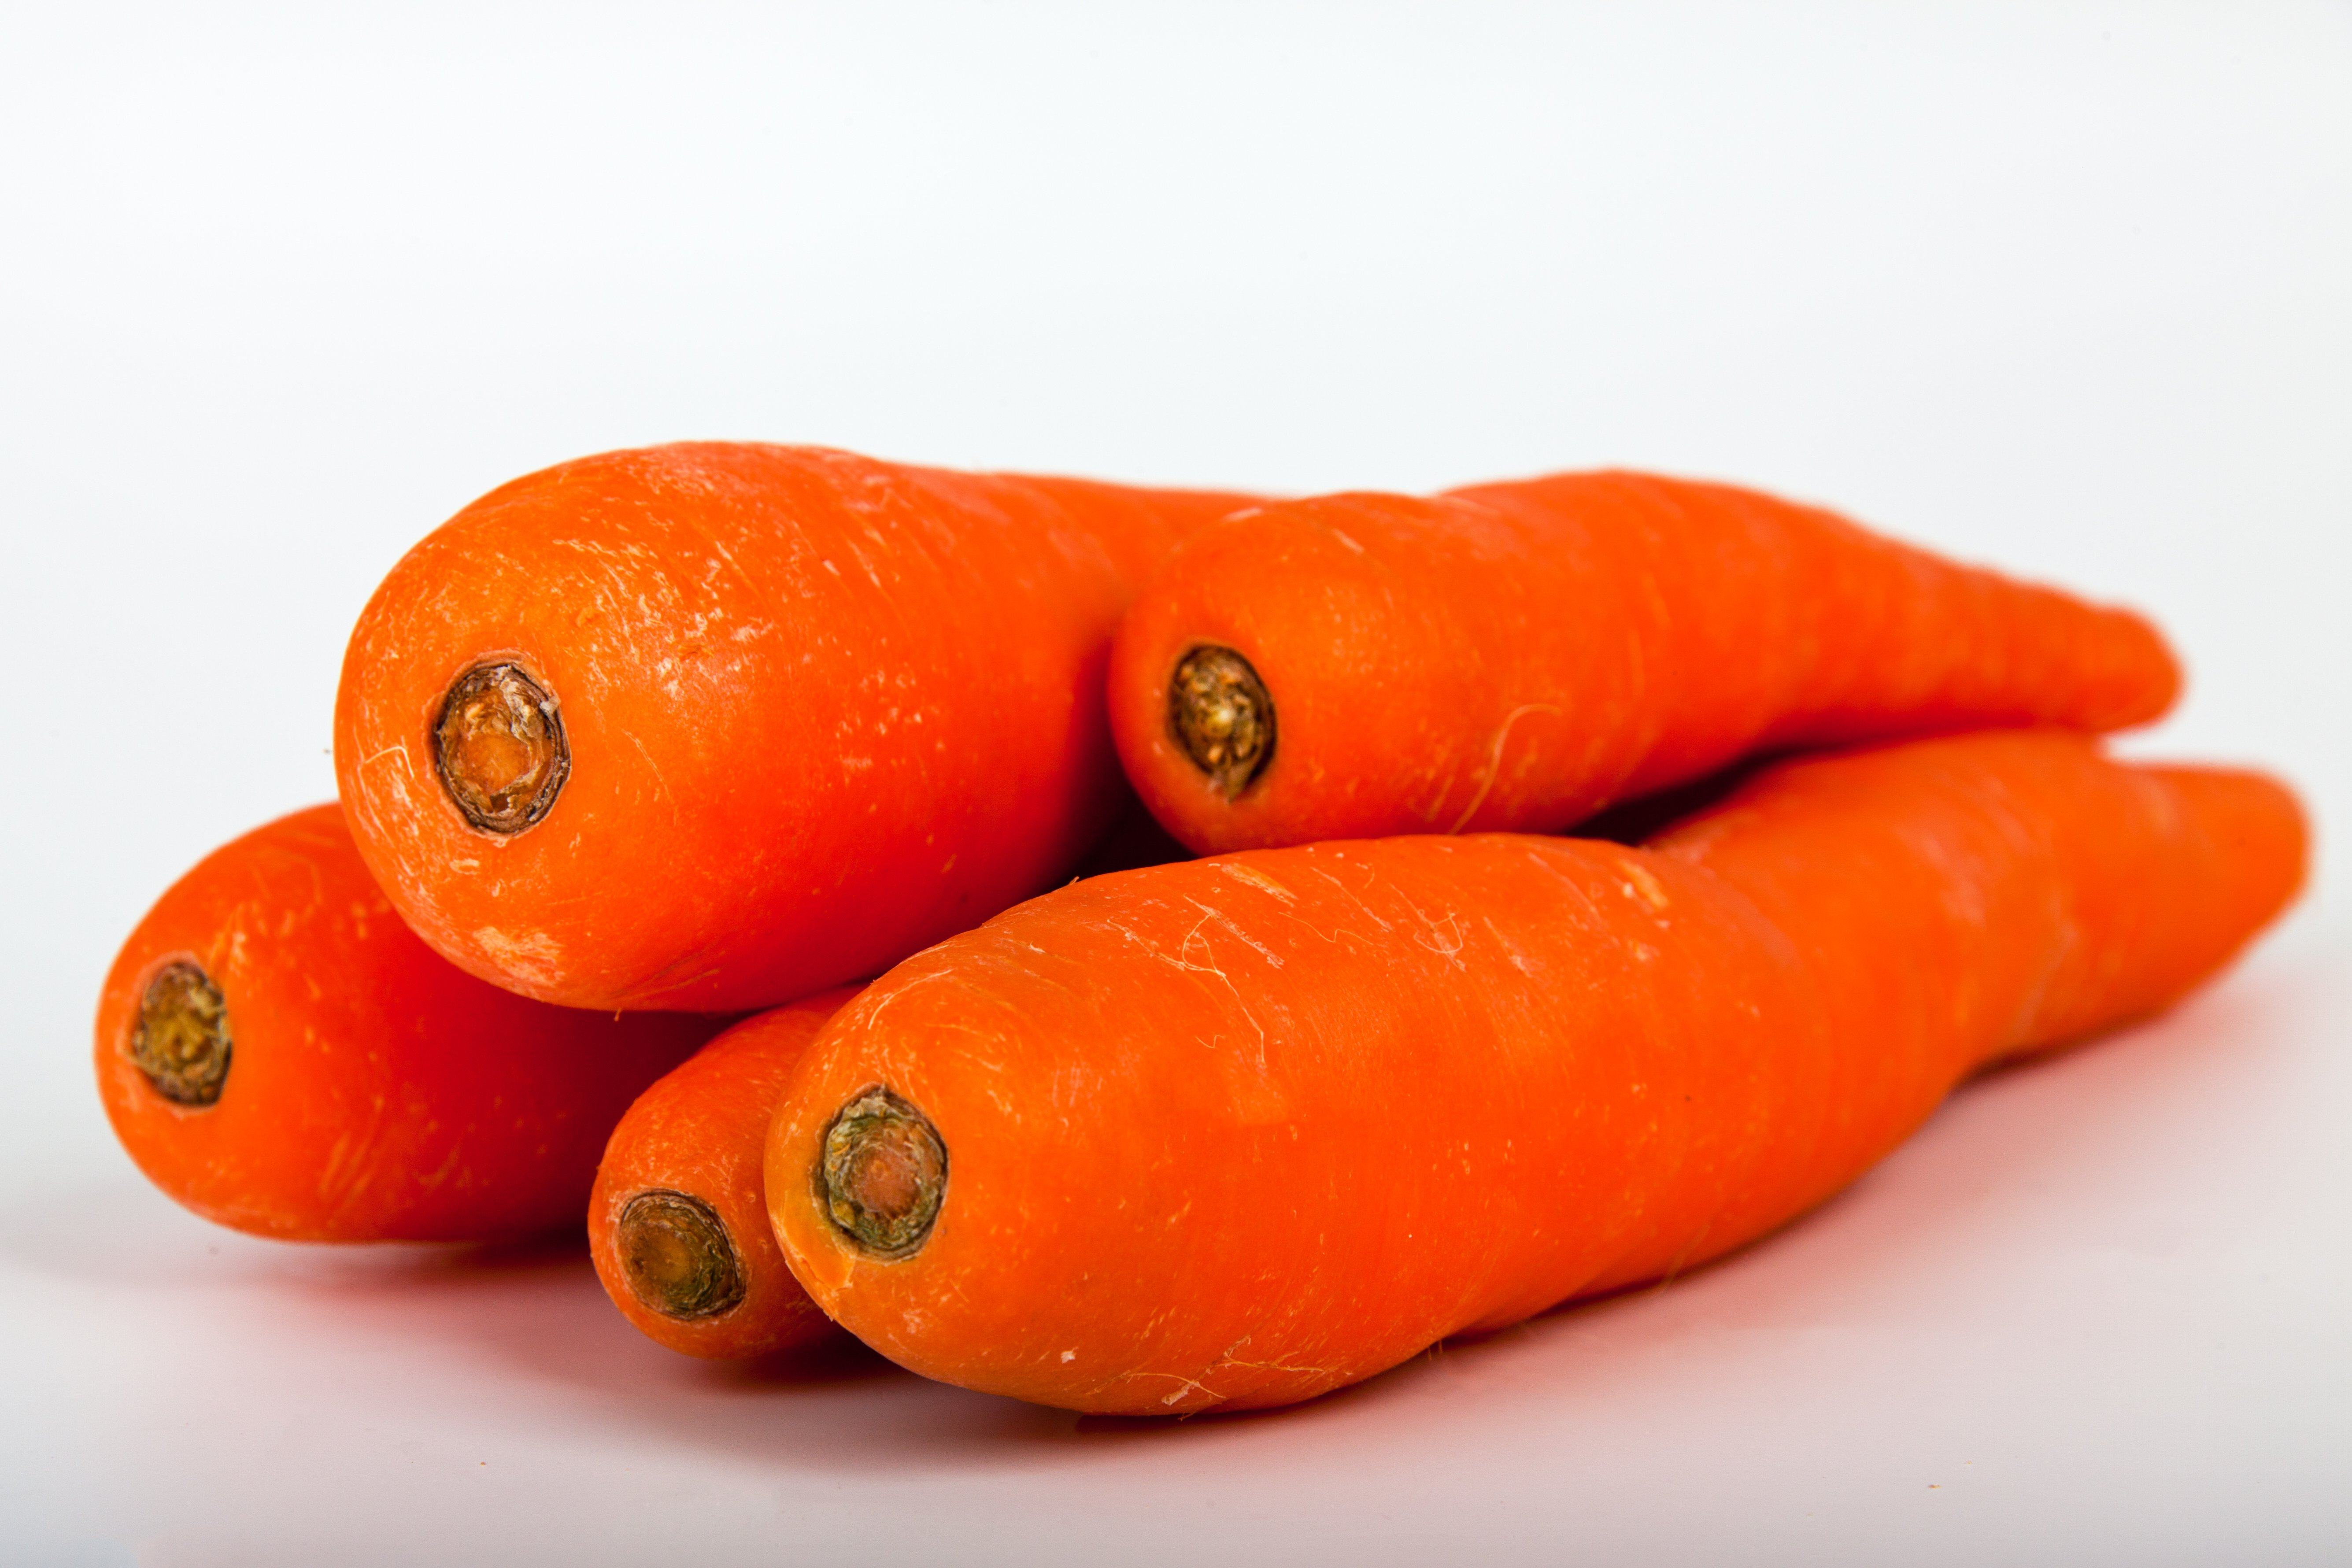 Sore throats can be treated with carrot poultice